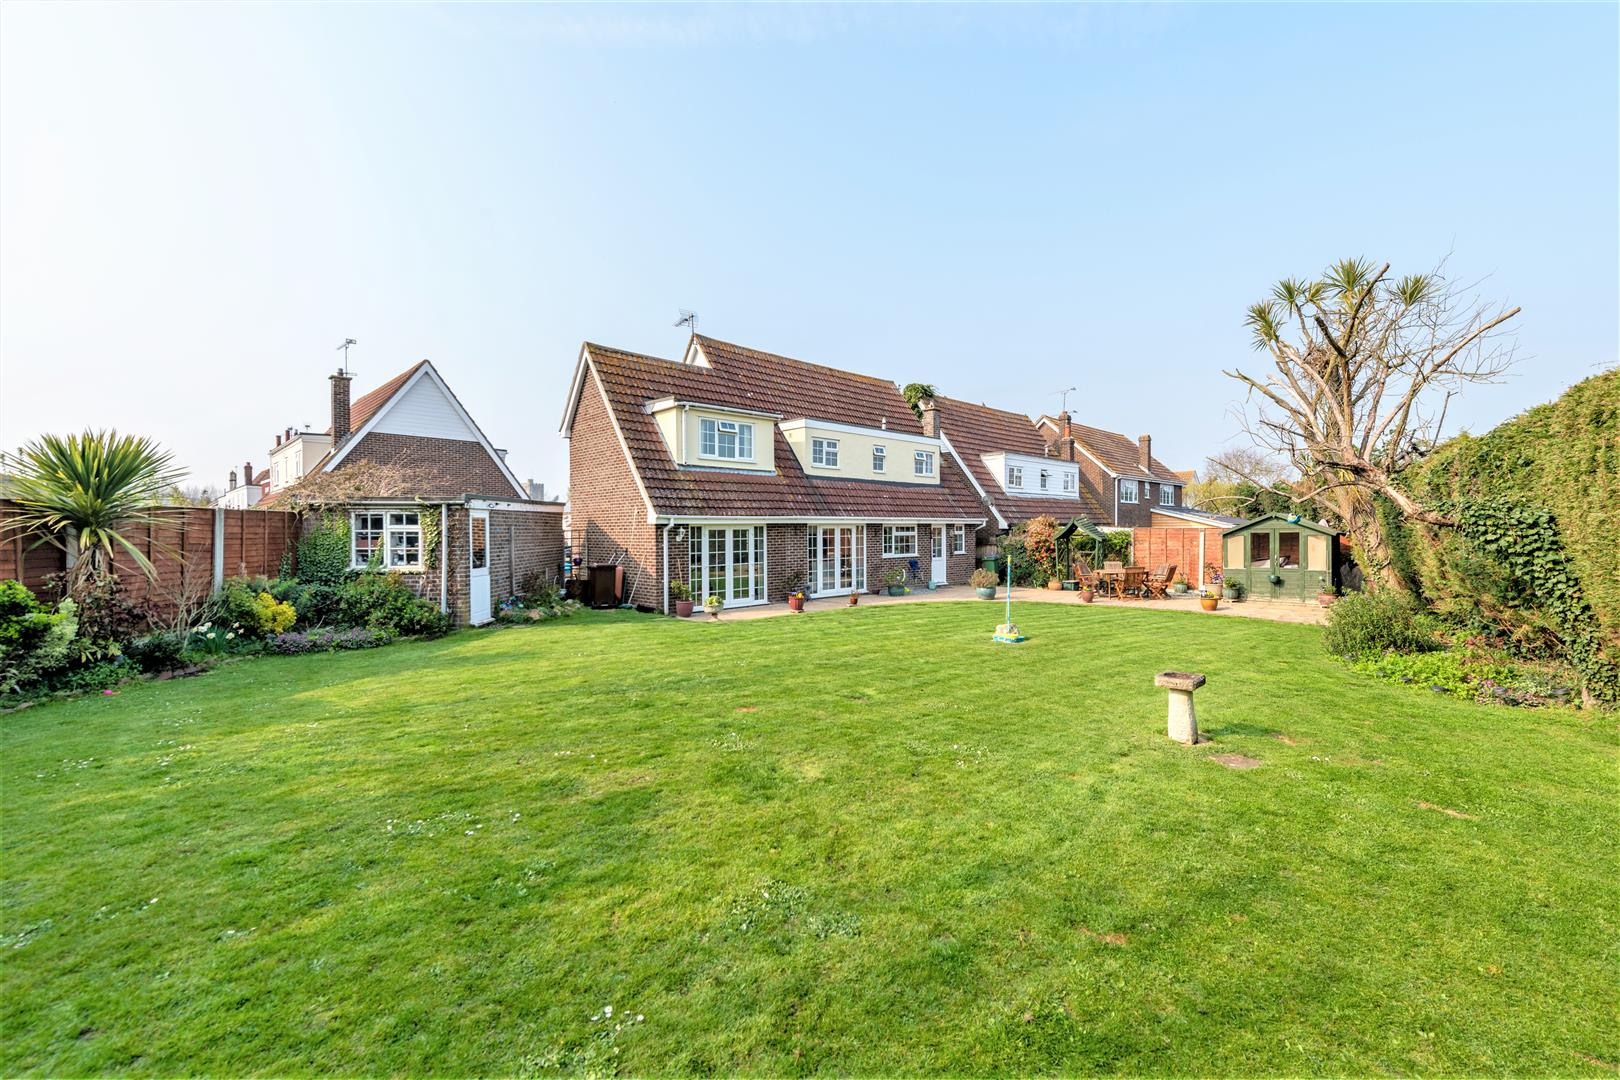 The Sparlings, Kirby-Le-Soken, Essex, CO13 0HD